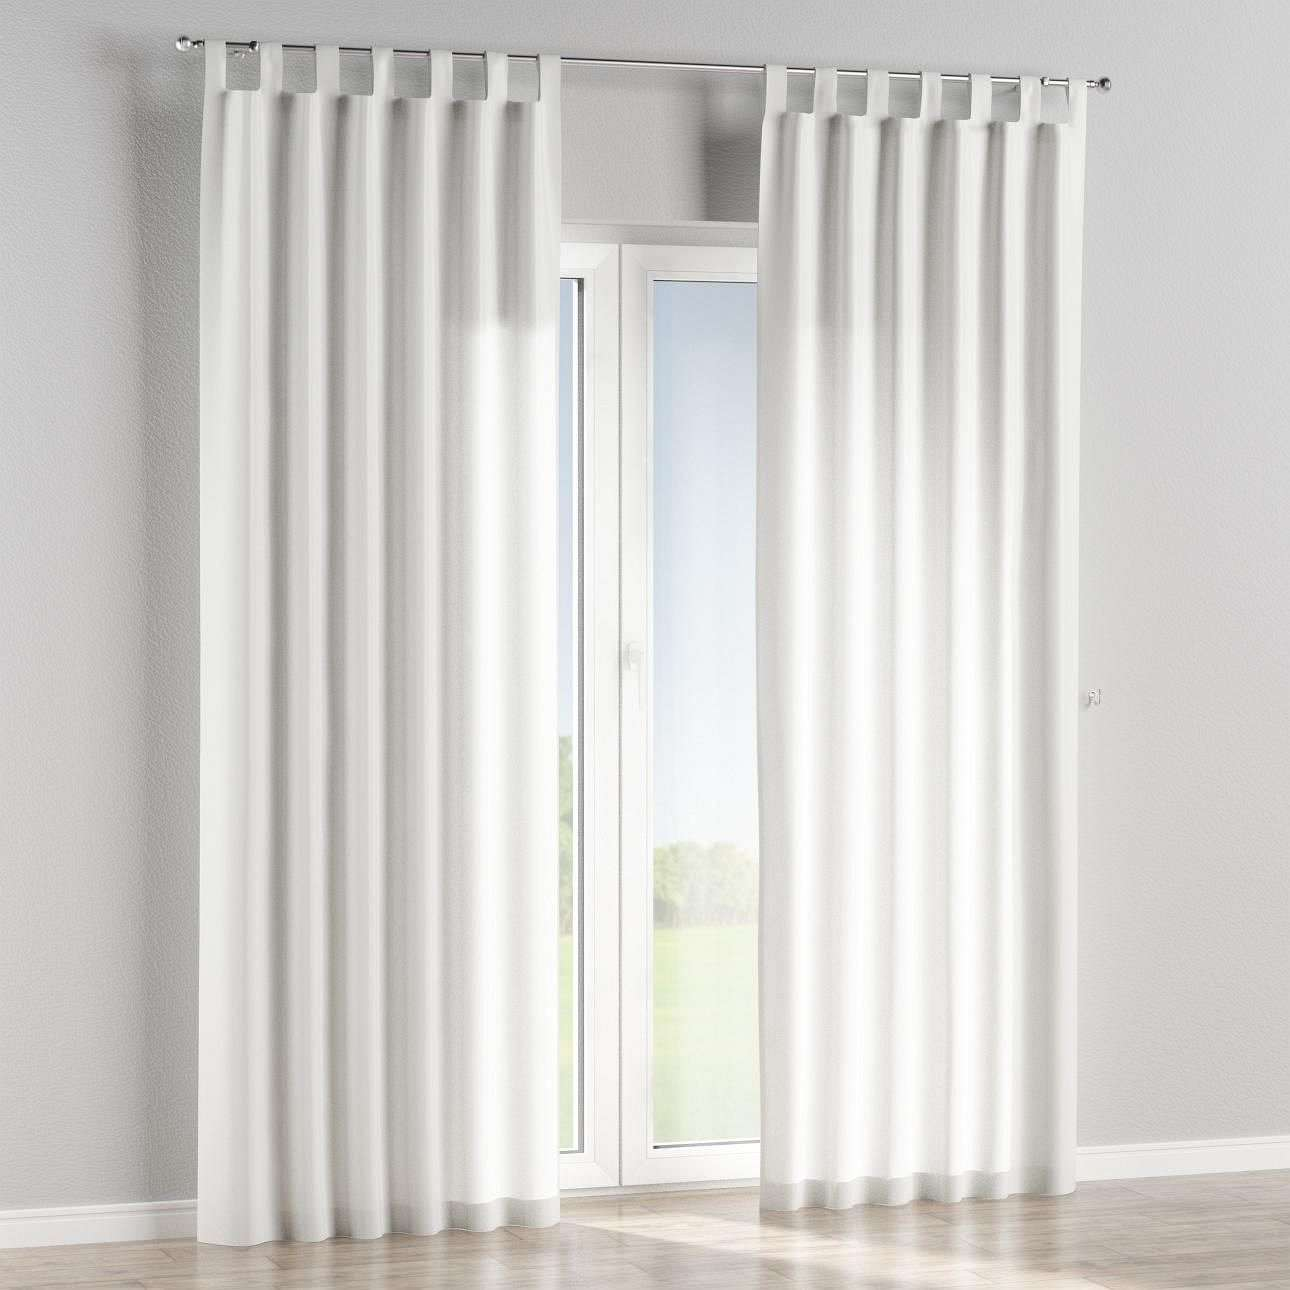 Tab top curtains in collection SALE, fabric: 137-20